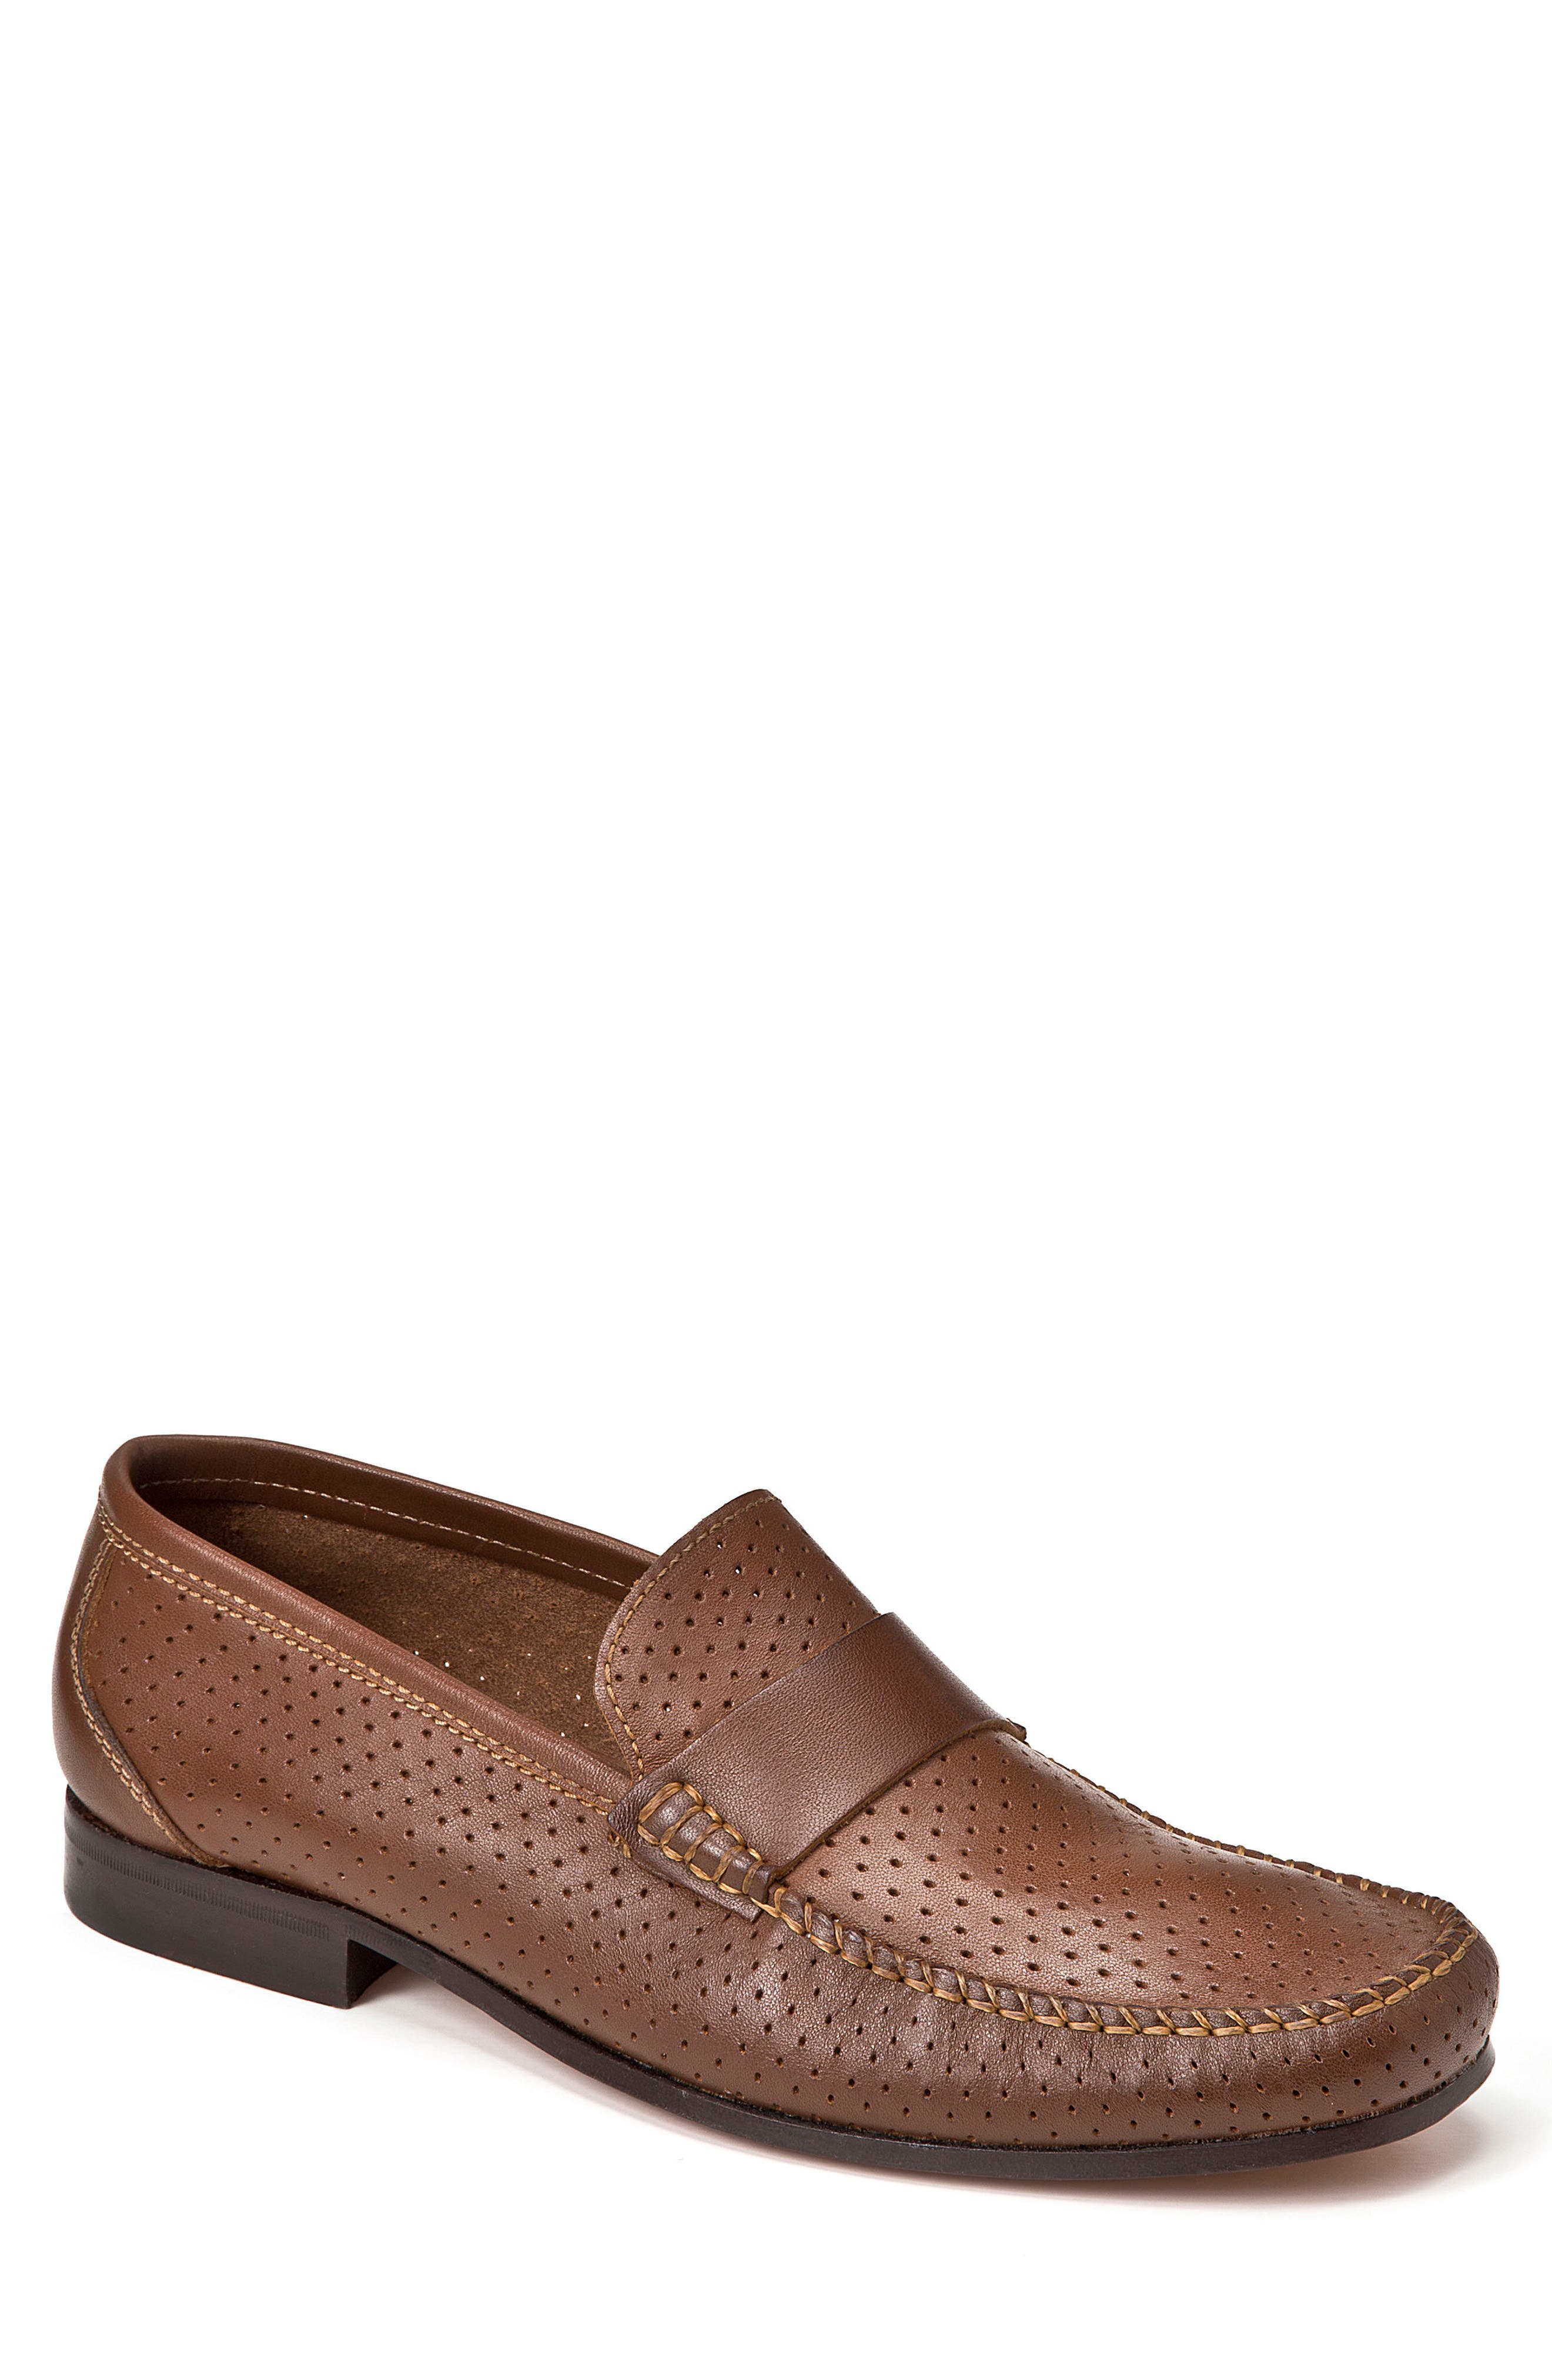 Alternate Image 1 Selected - Sandro Moscoloni Alcazar Perforated Loafer (Men)